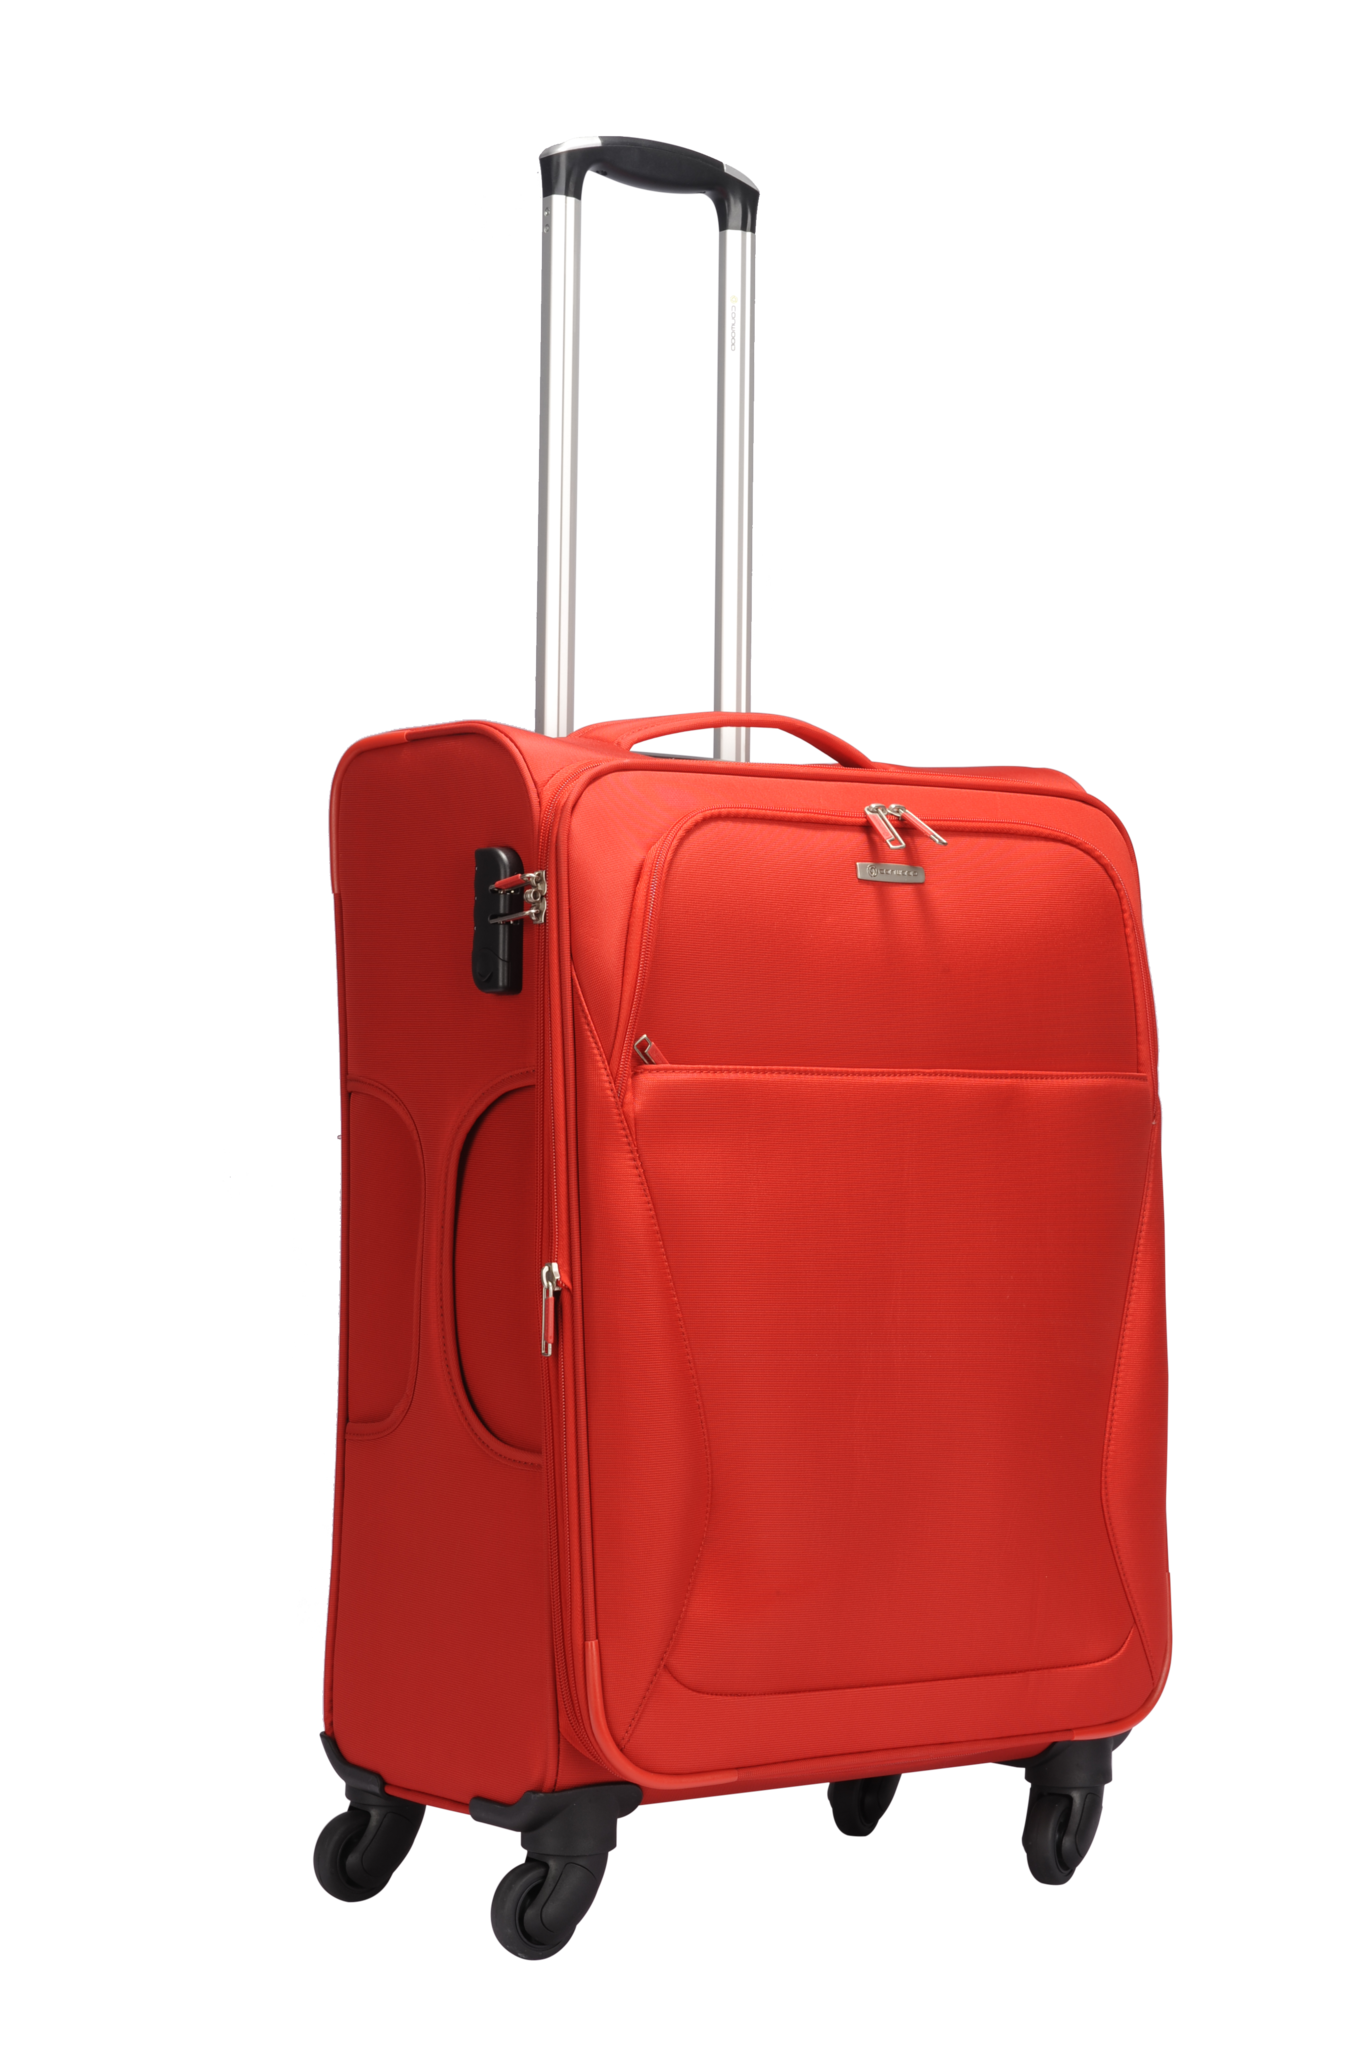 Red luggage PNG image